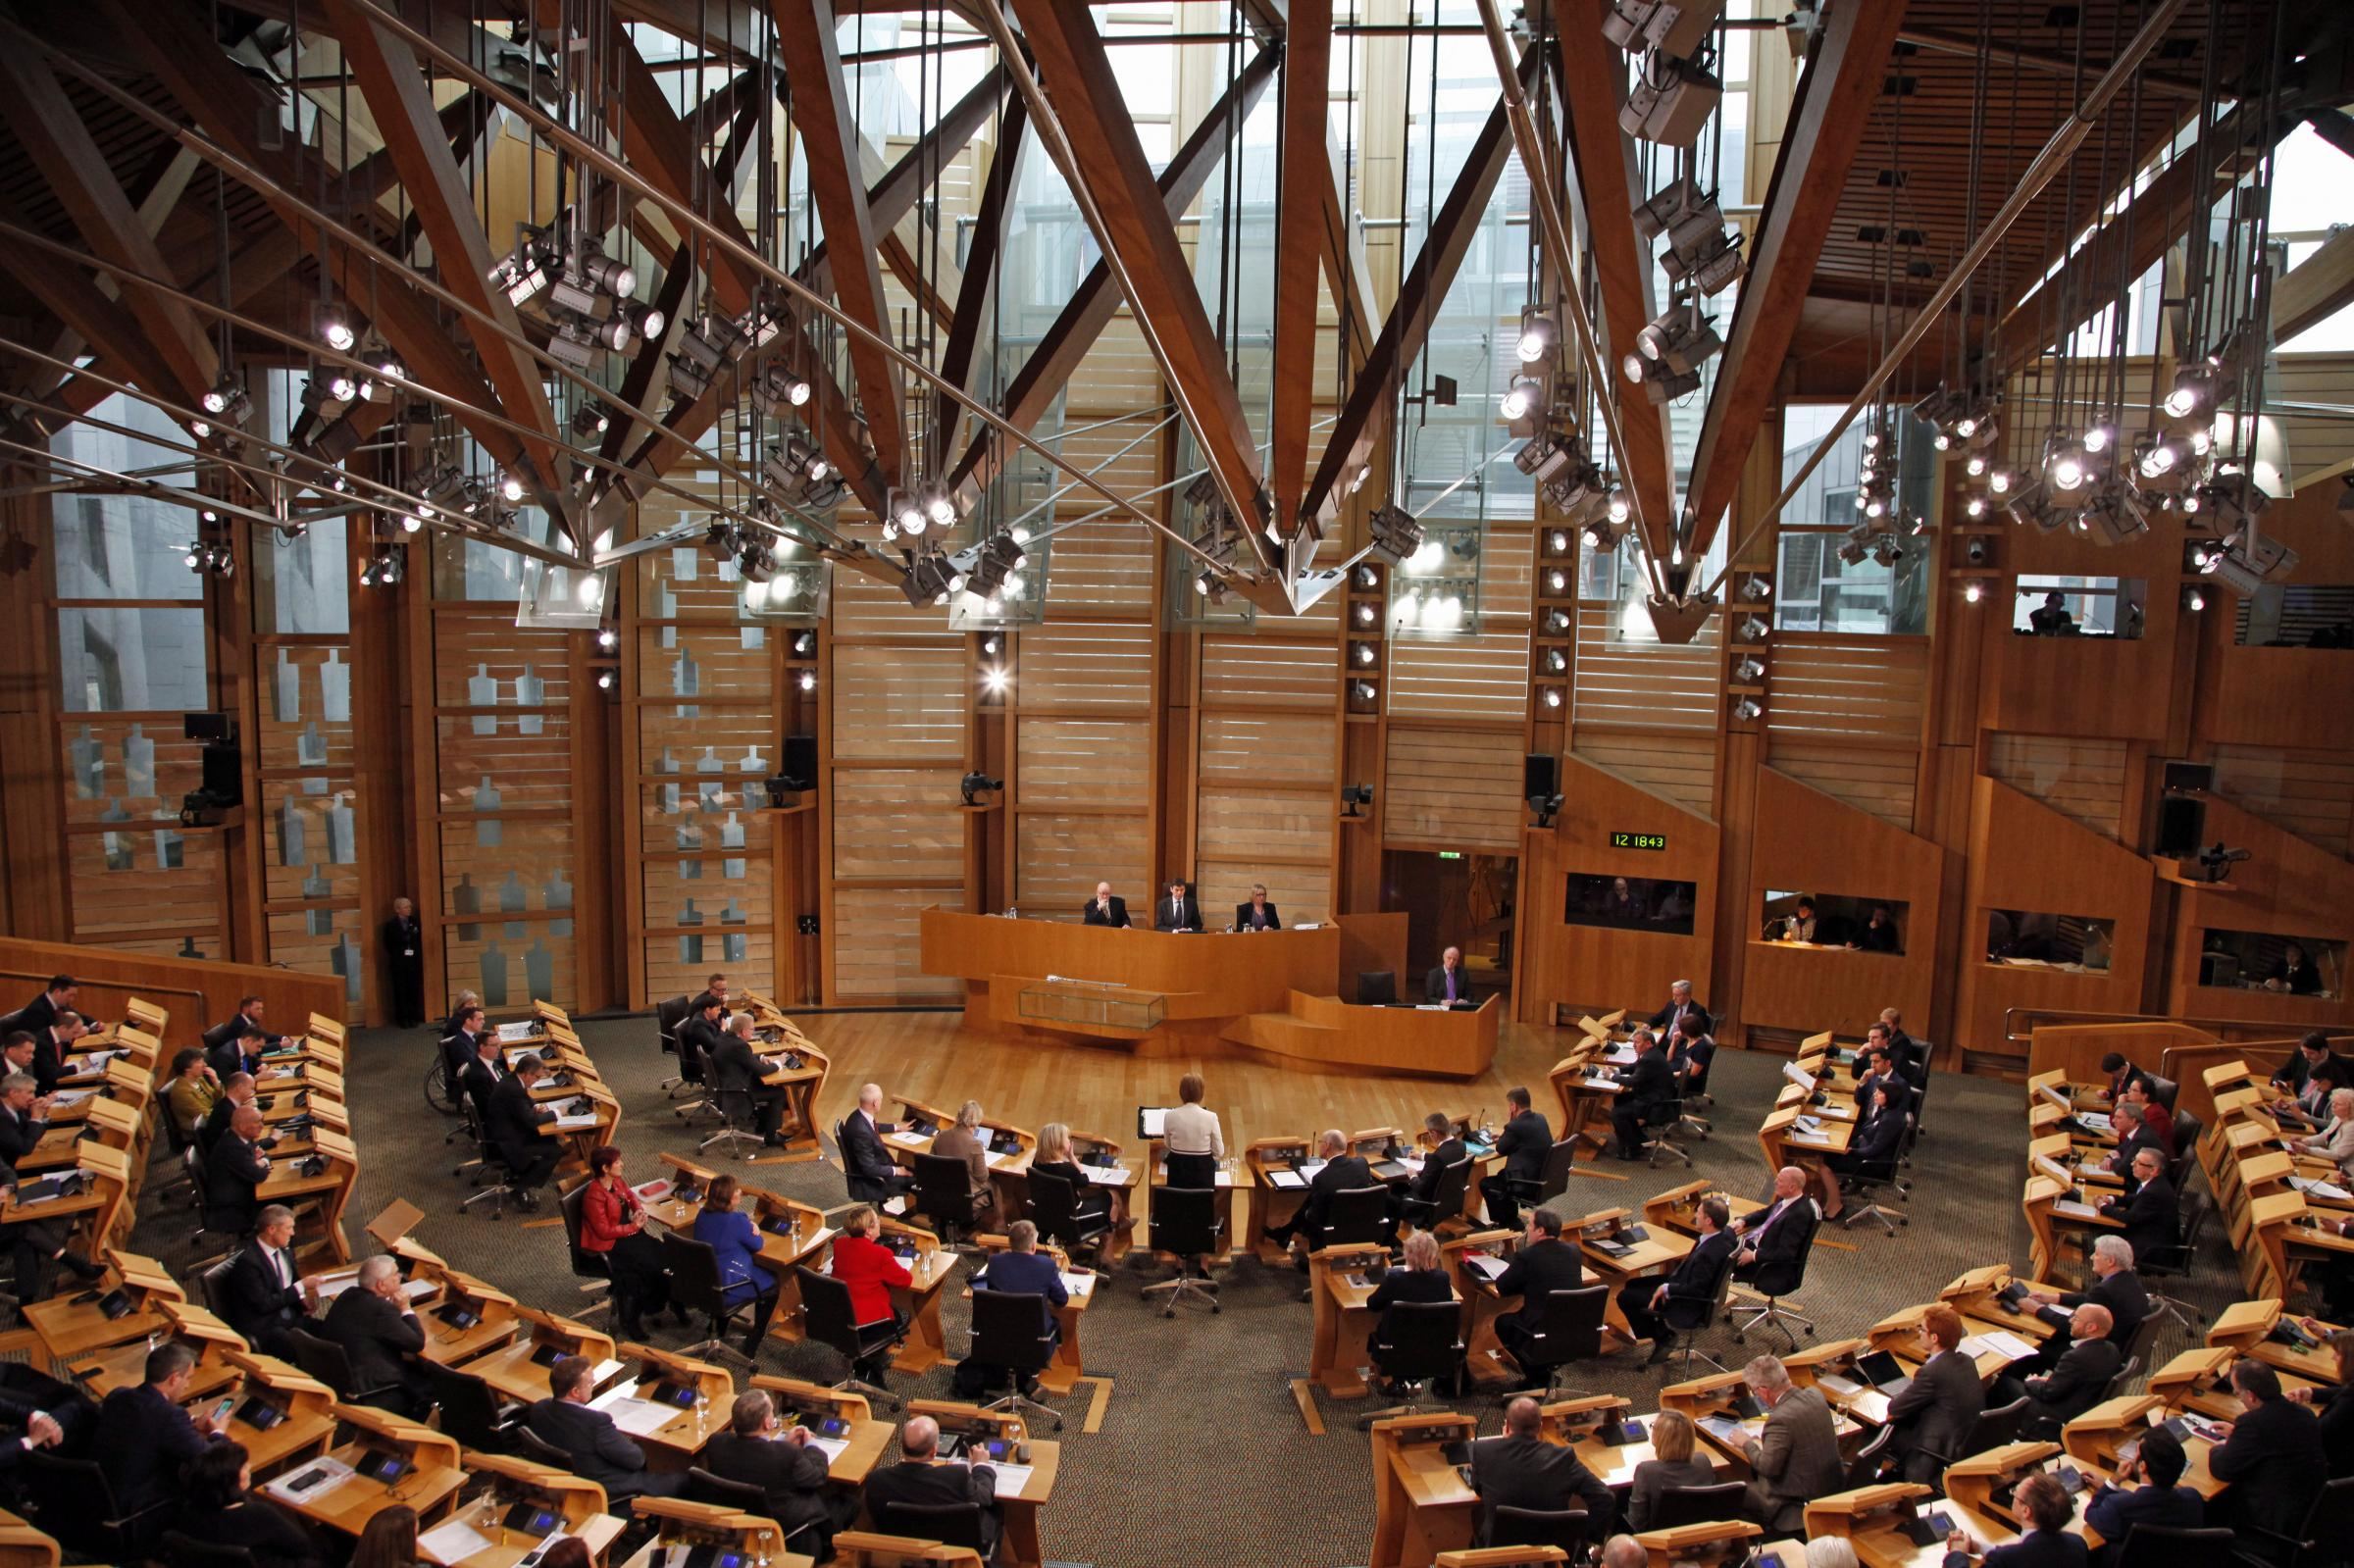 A constitution can ensure Holyrood will protect Scots' rights after independence